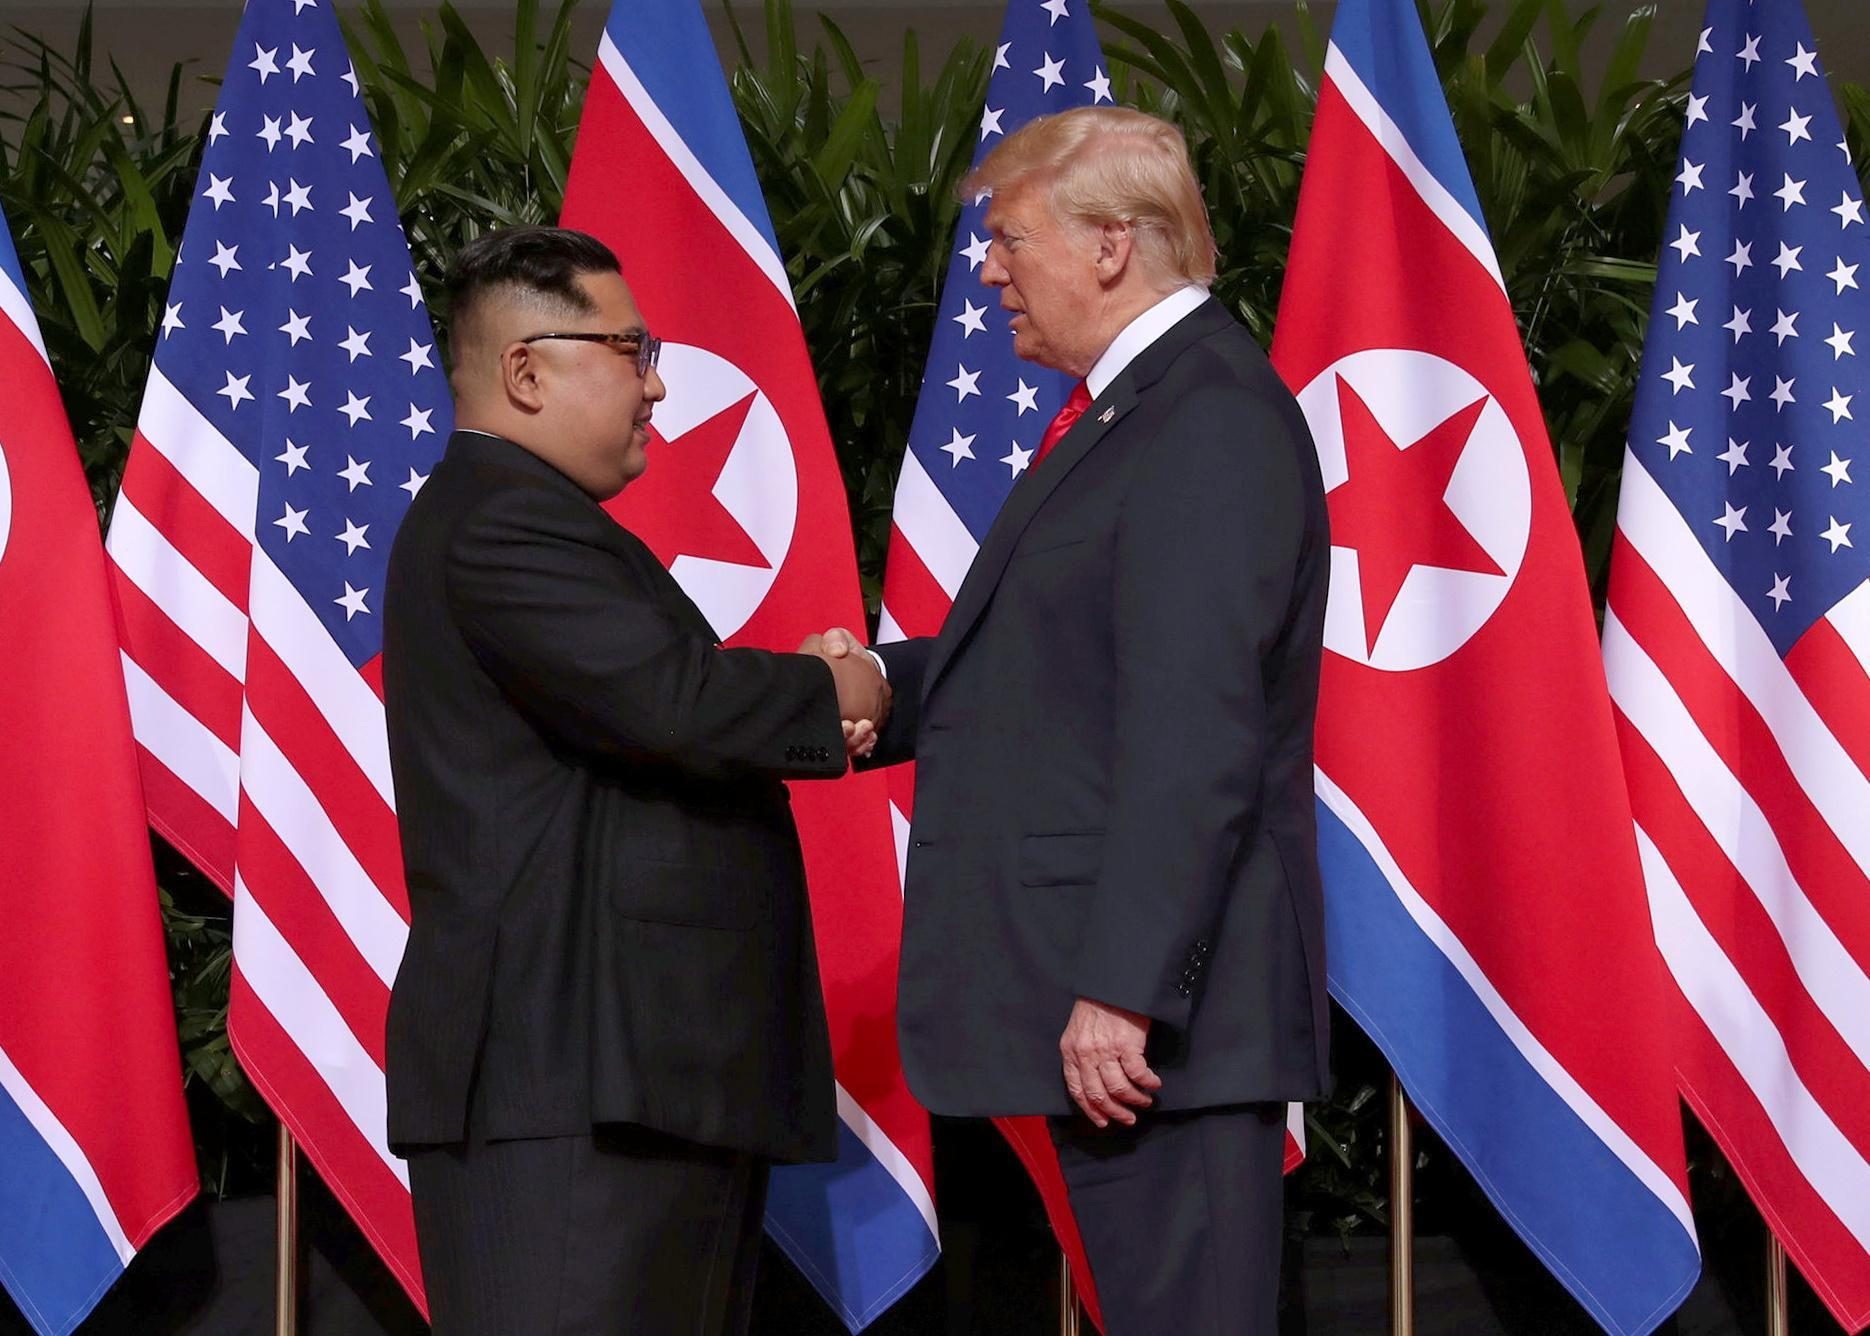 Seeing U.S. Flag Alongside North Korea's Was 'Disgusting,' Says Ex-CIA Official